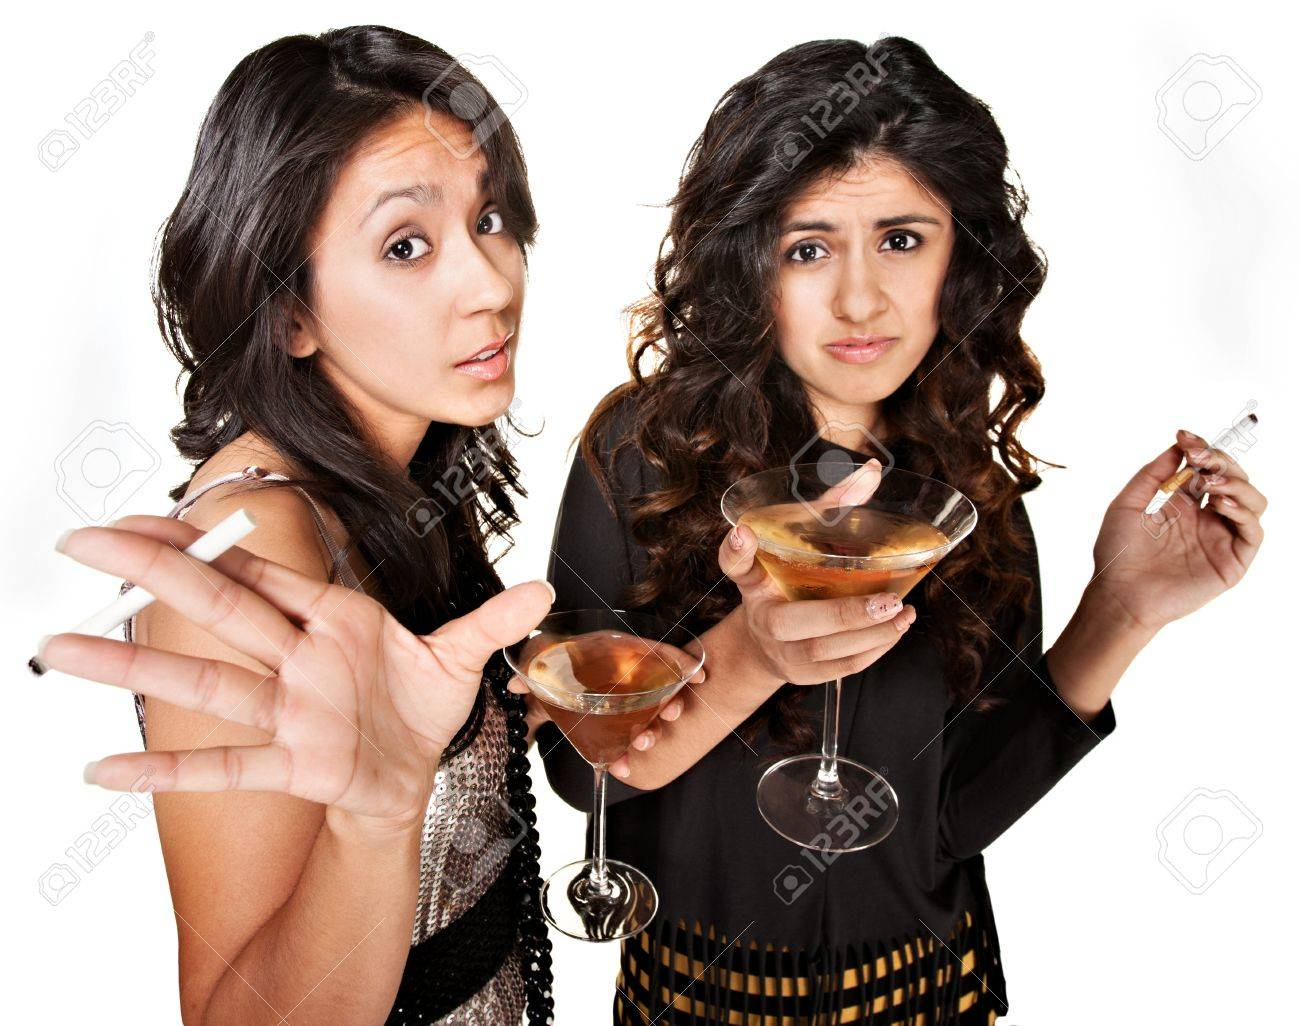 Rude club girls with cigarettes and martinis over white background Stock Photo - 17991558